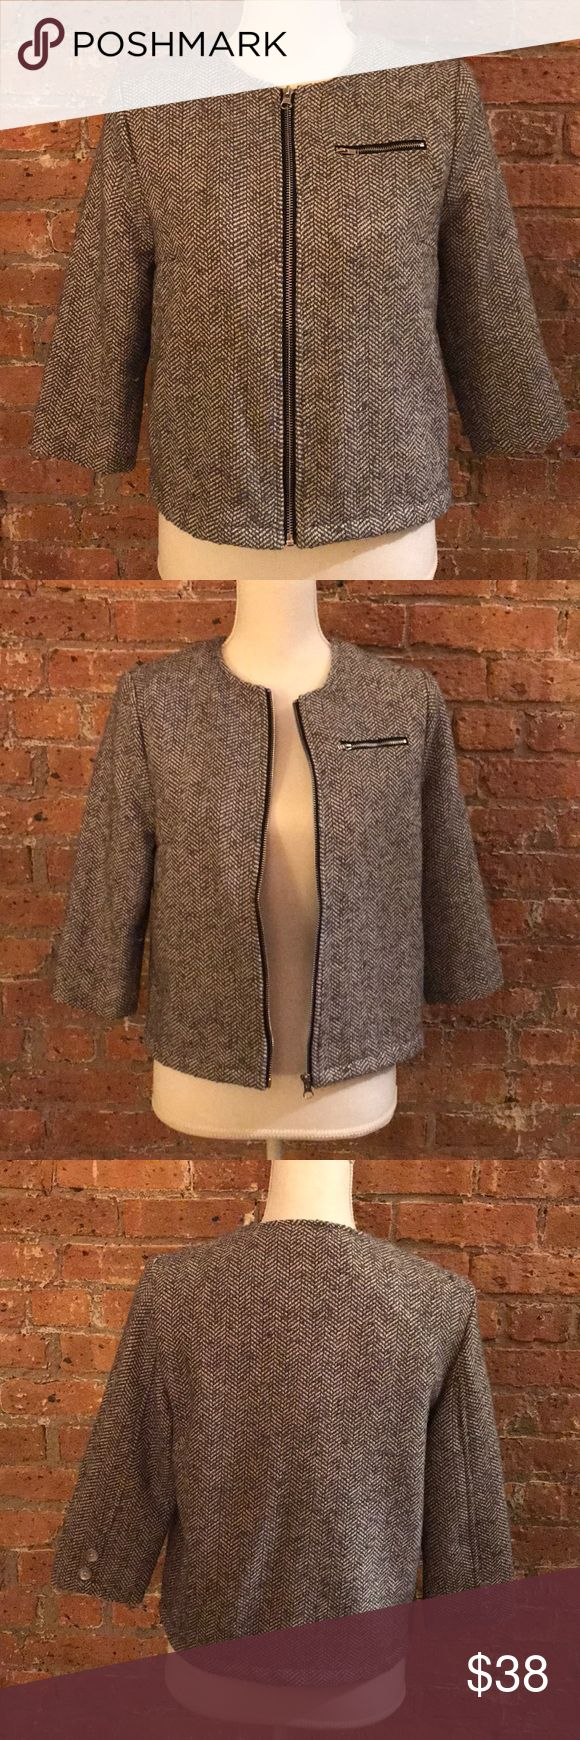 Gorgeous zip up knit blazer This black and white knit zip up blazer is the perfect addition to your work attire. Silver zip pocket on the left breast with polyester inside. Jackets & Coats Blazers